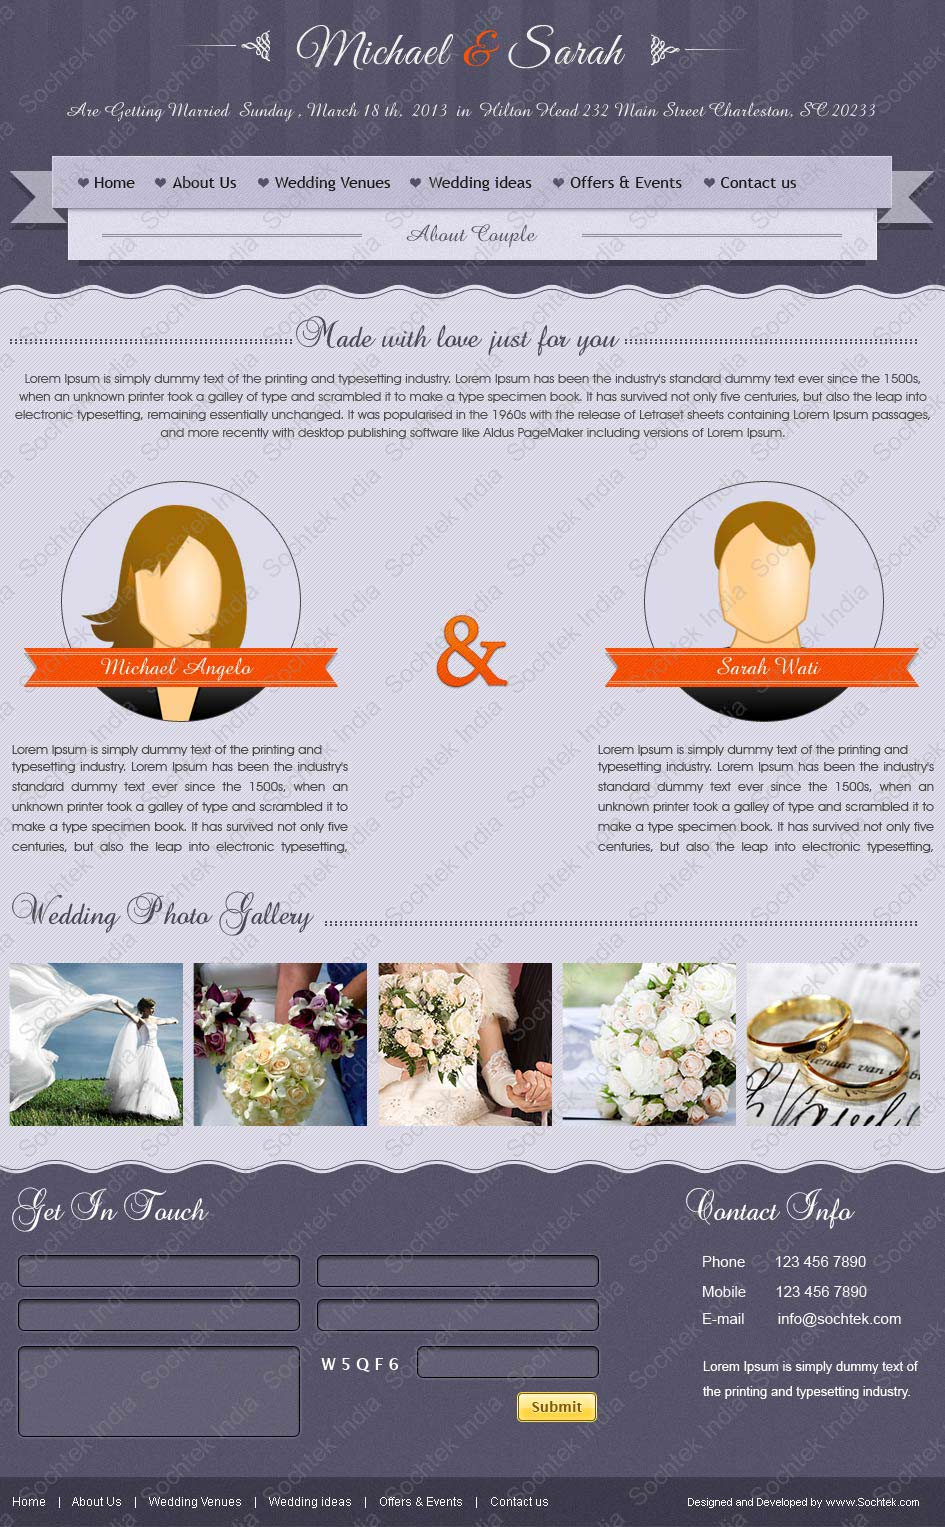 wedding-website-design12